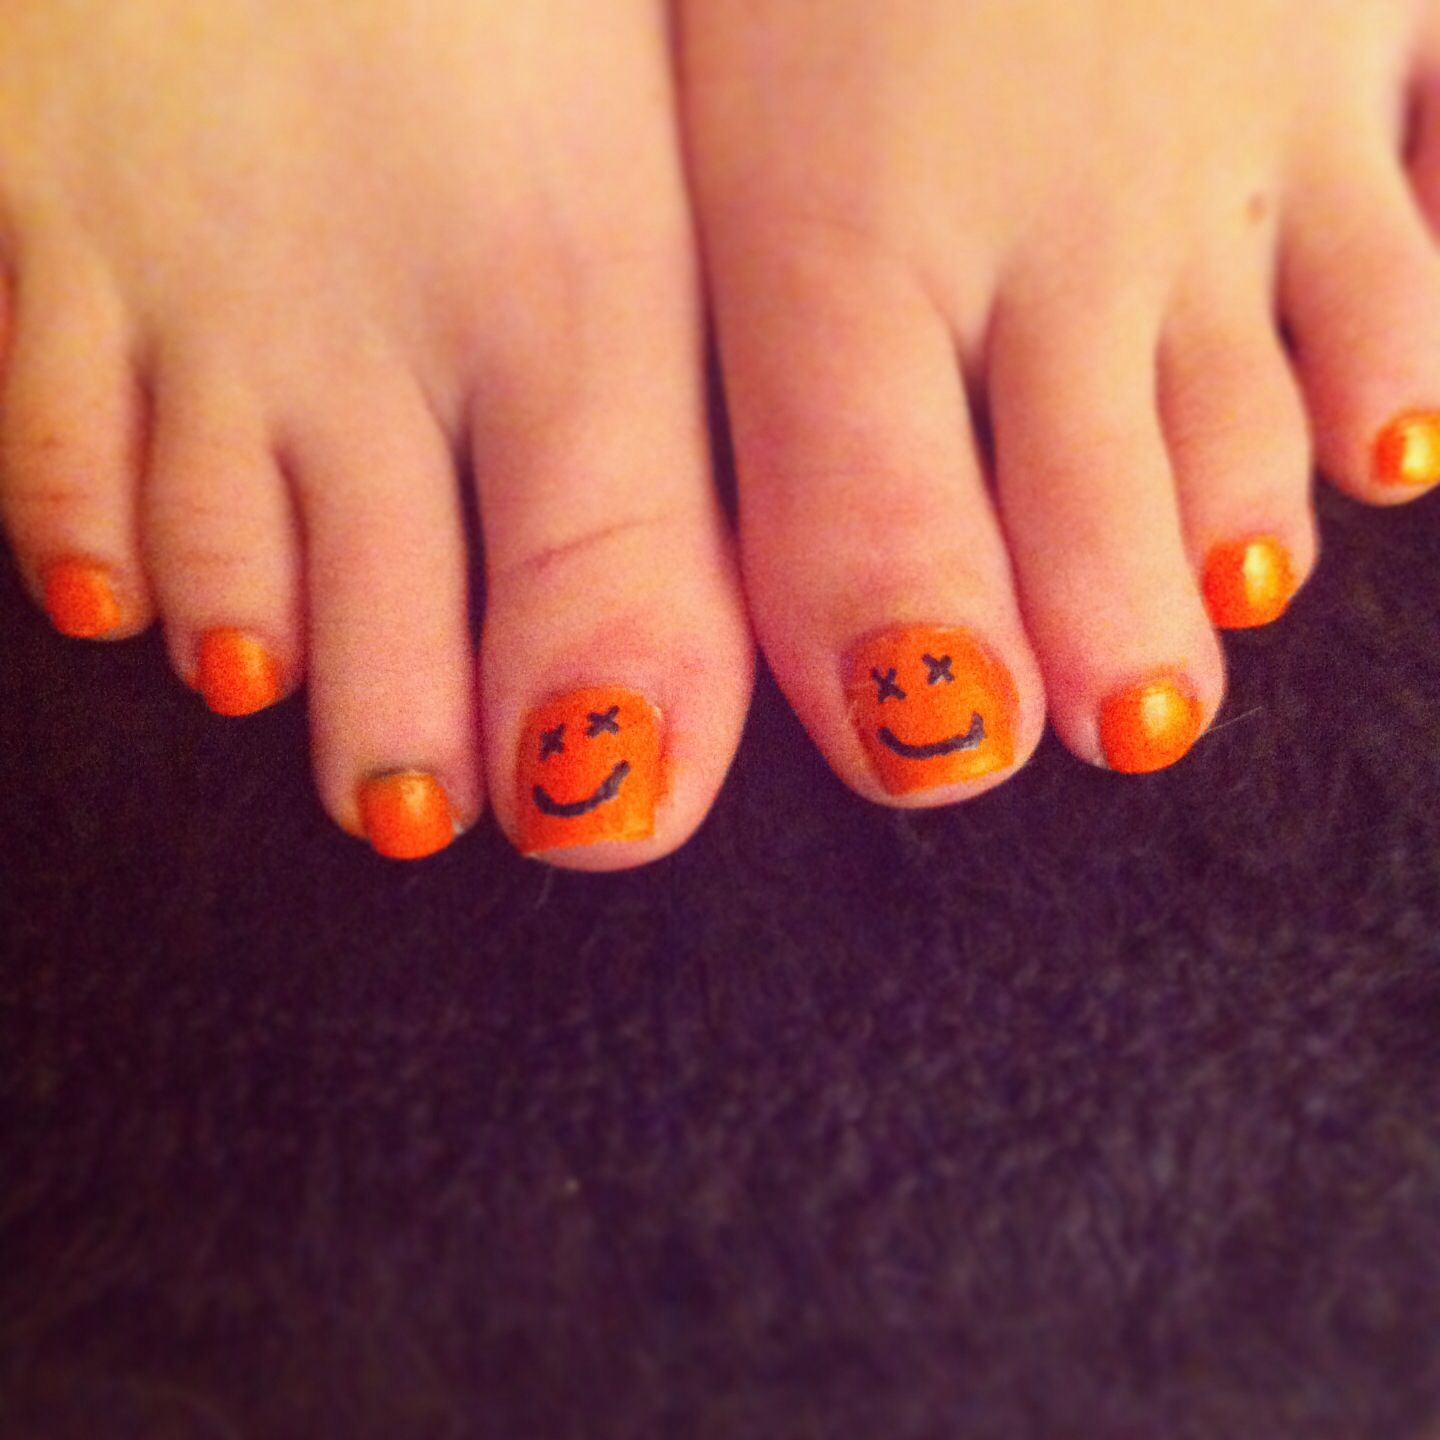 Halloween Toenails Halloween Nails Toe Nails Different Types Of Nails